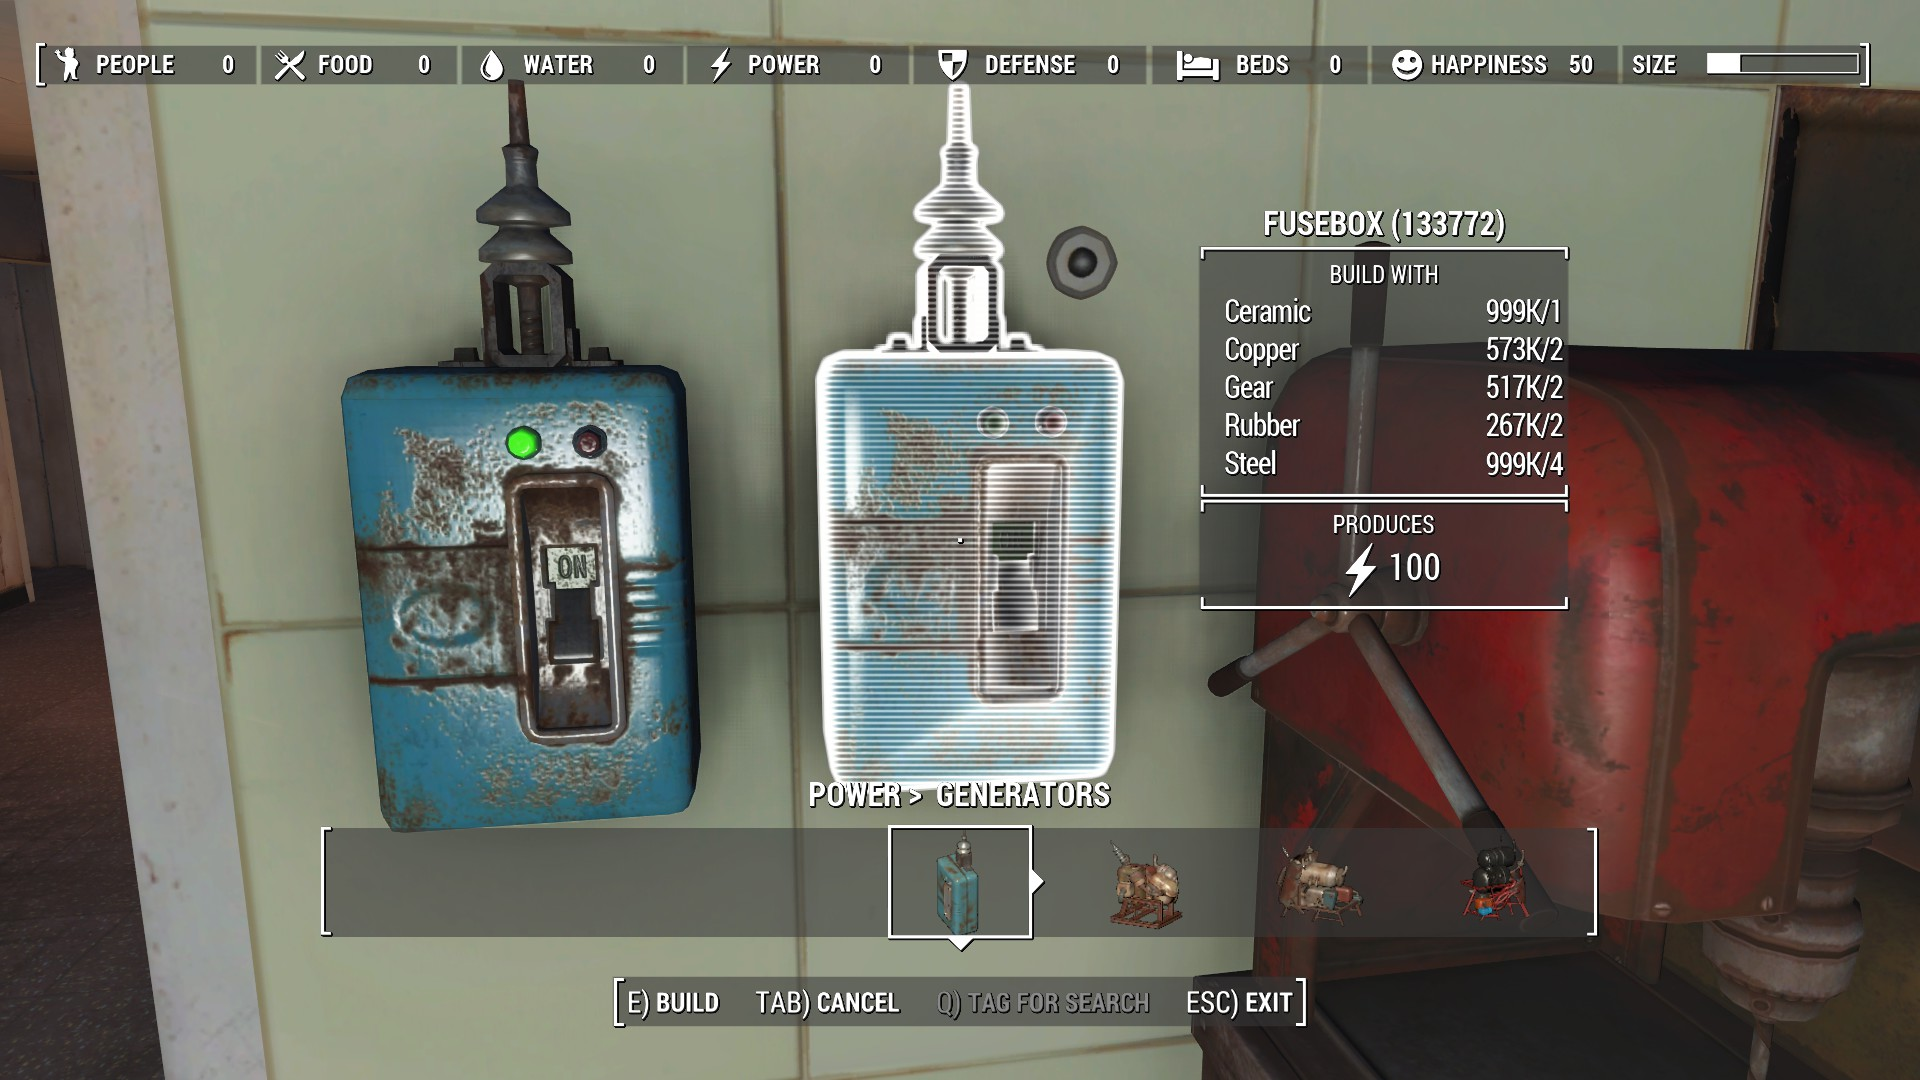 3429 0 1448747560 fallout 4 fuse box id fallout 3 xbox 360 \u2022 wiring diagram database fallout 4 fuse box lid at readyjetset.co